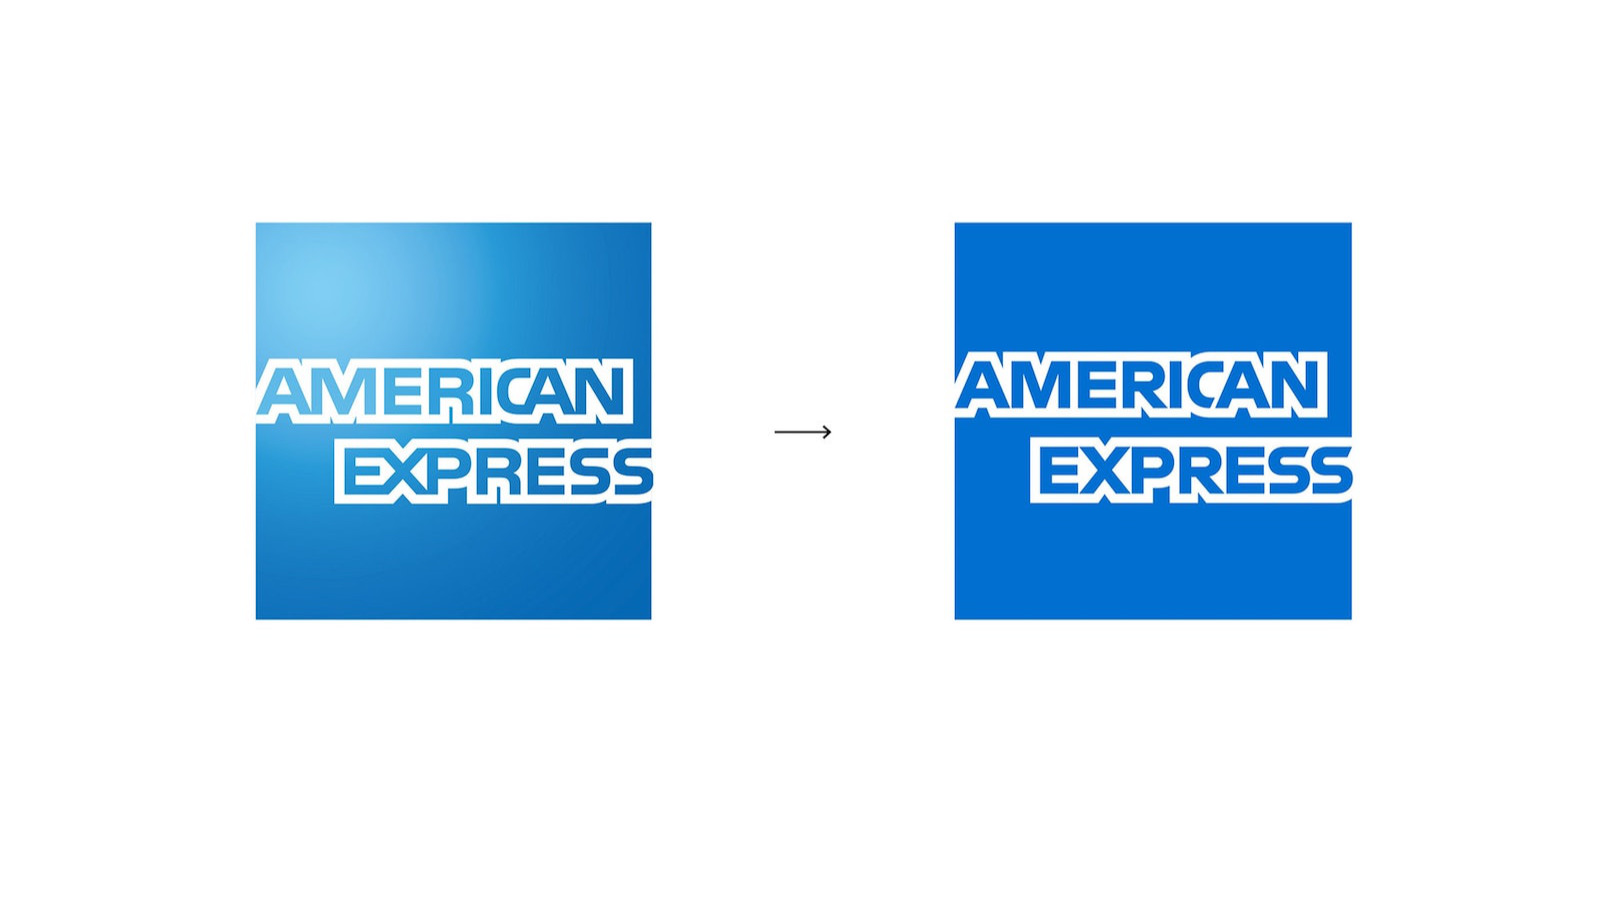 American Express Logo Change in 40 years